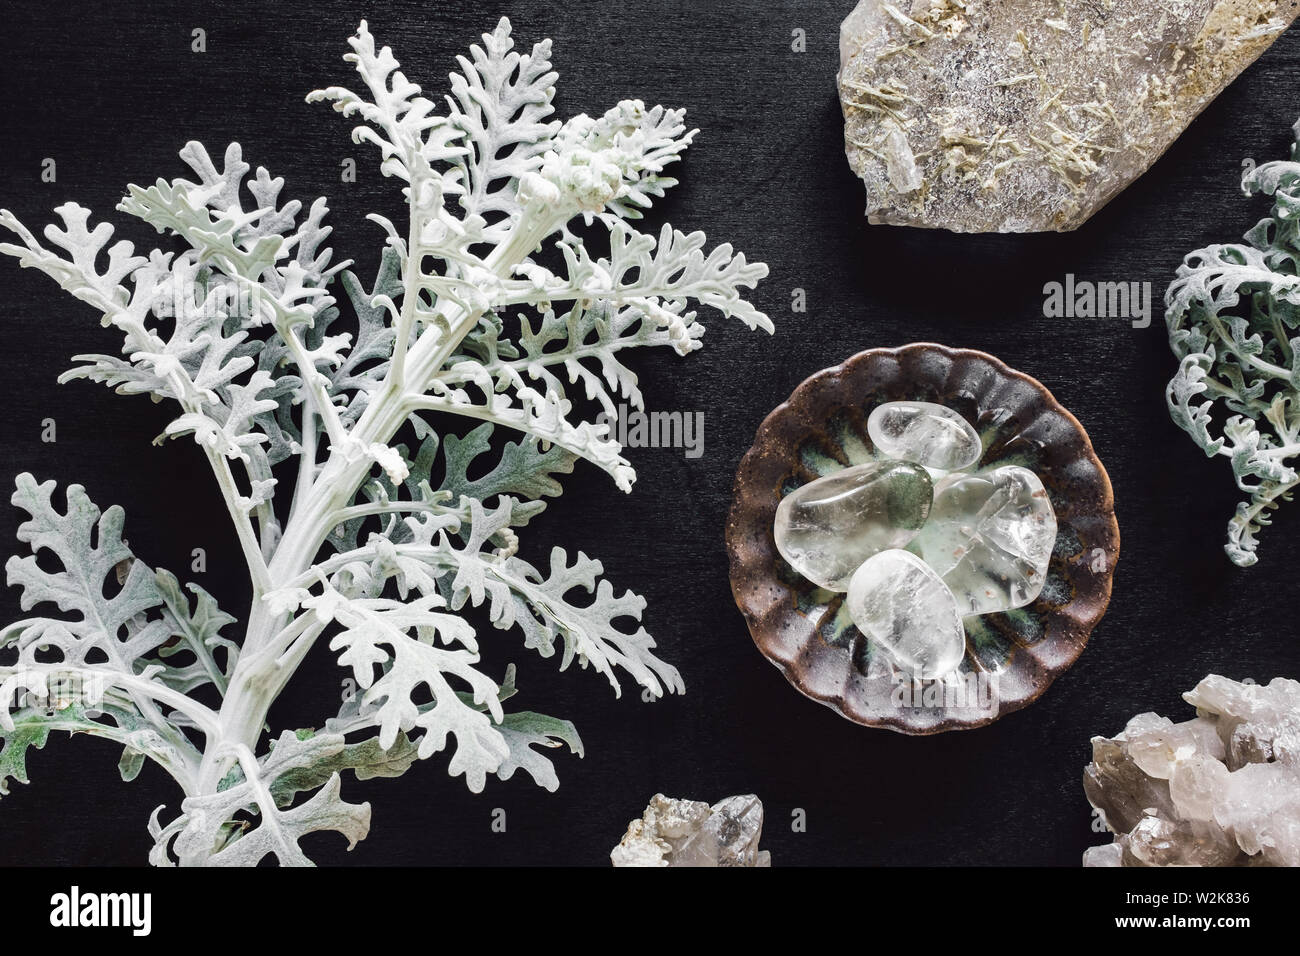 Clear Quartz and Rough Quartz with Dusty Miller on Black Stained Wood Stock Photo